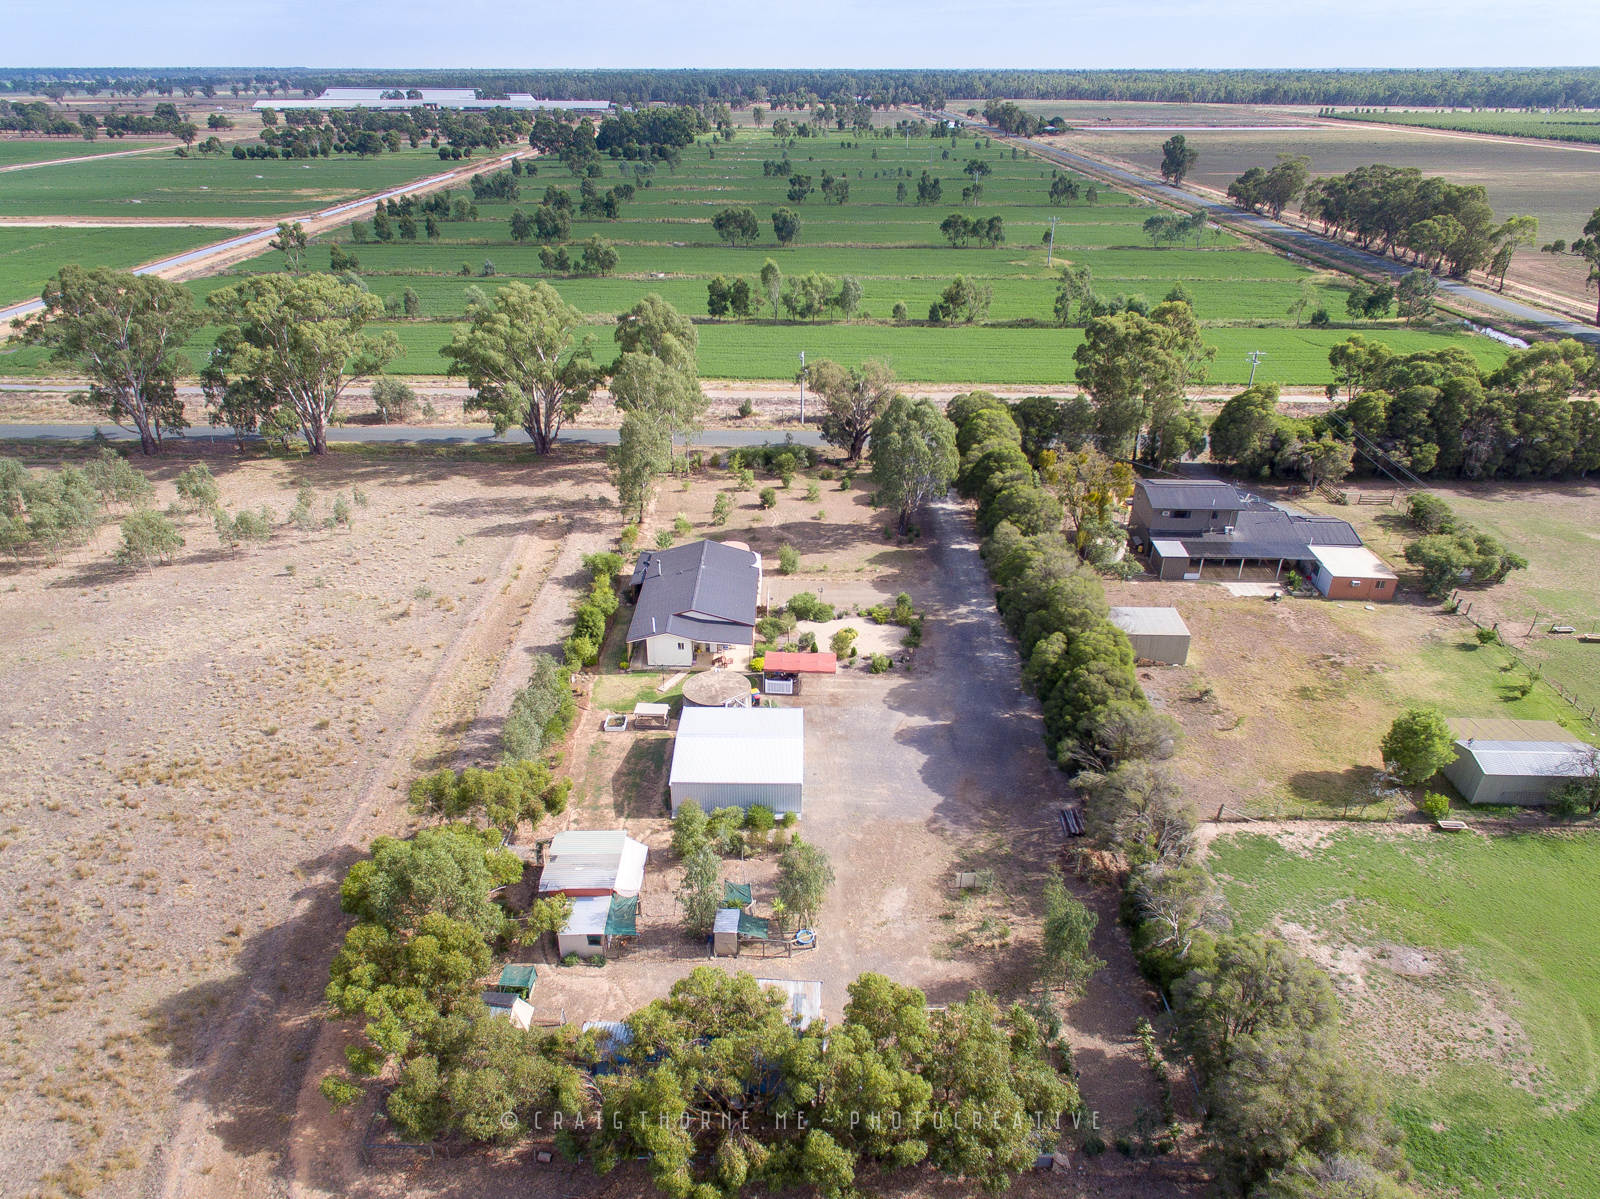 180208-03-CRE-710-Coomboona-Rd-Coomboona–©CT-DJI_0902.jpg